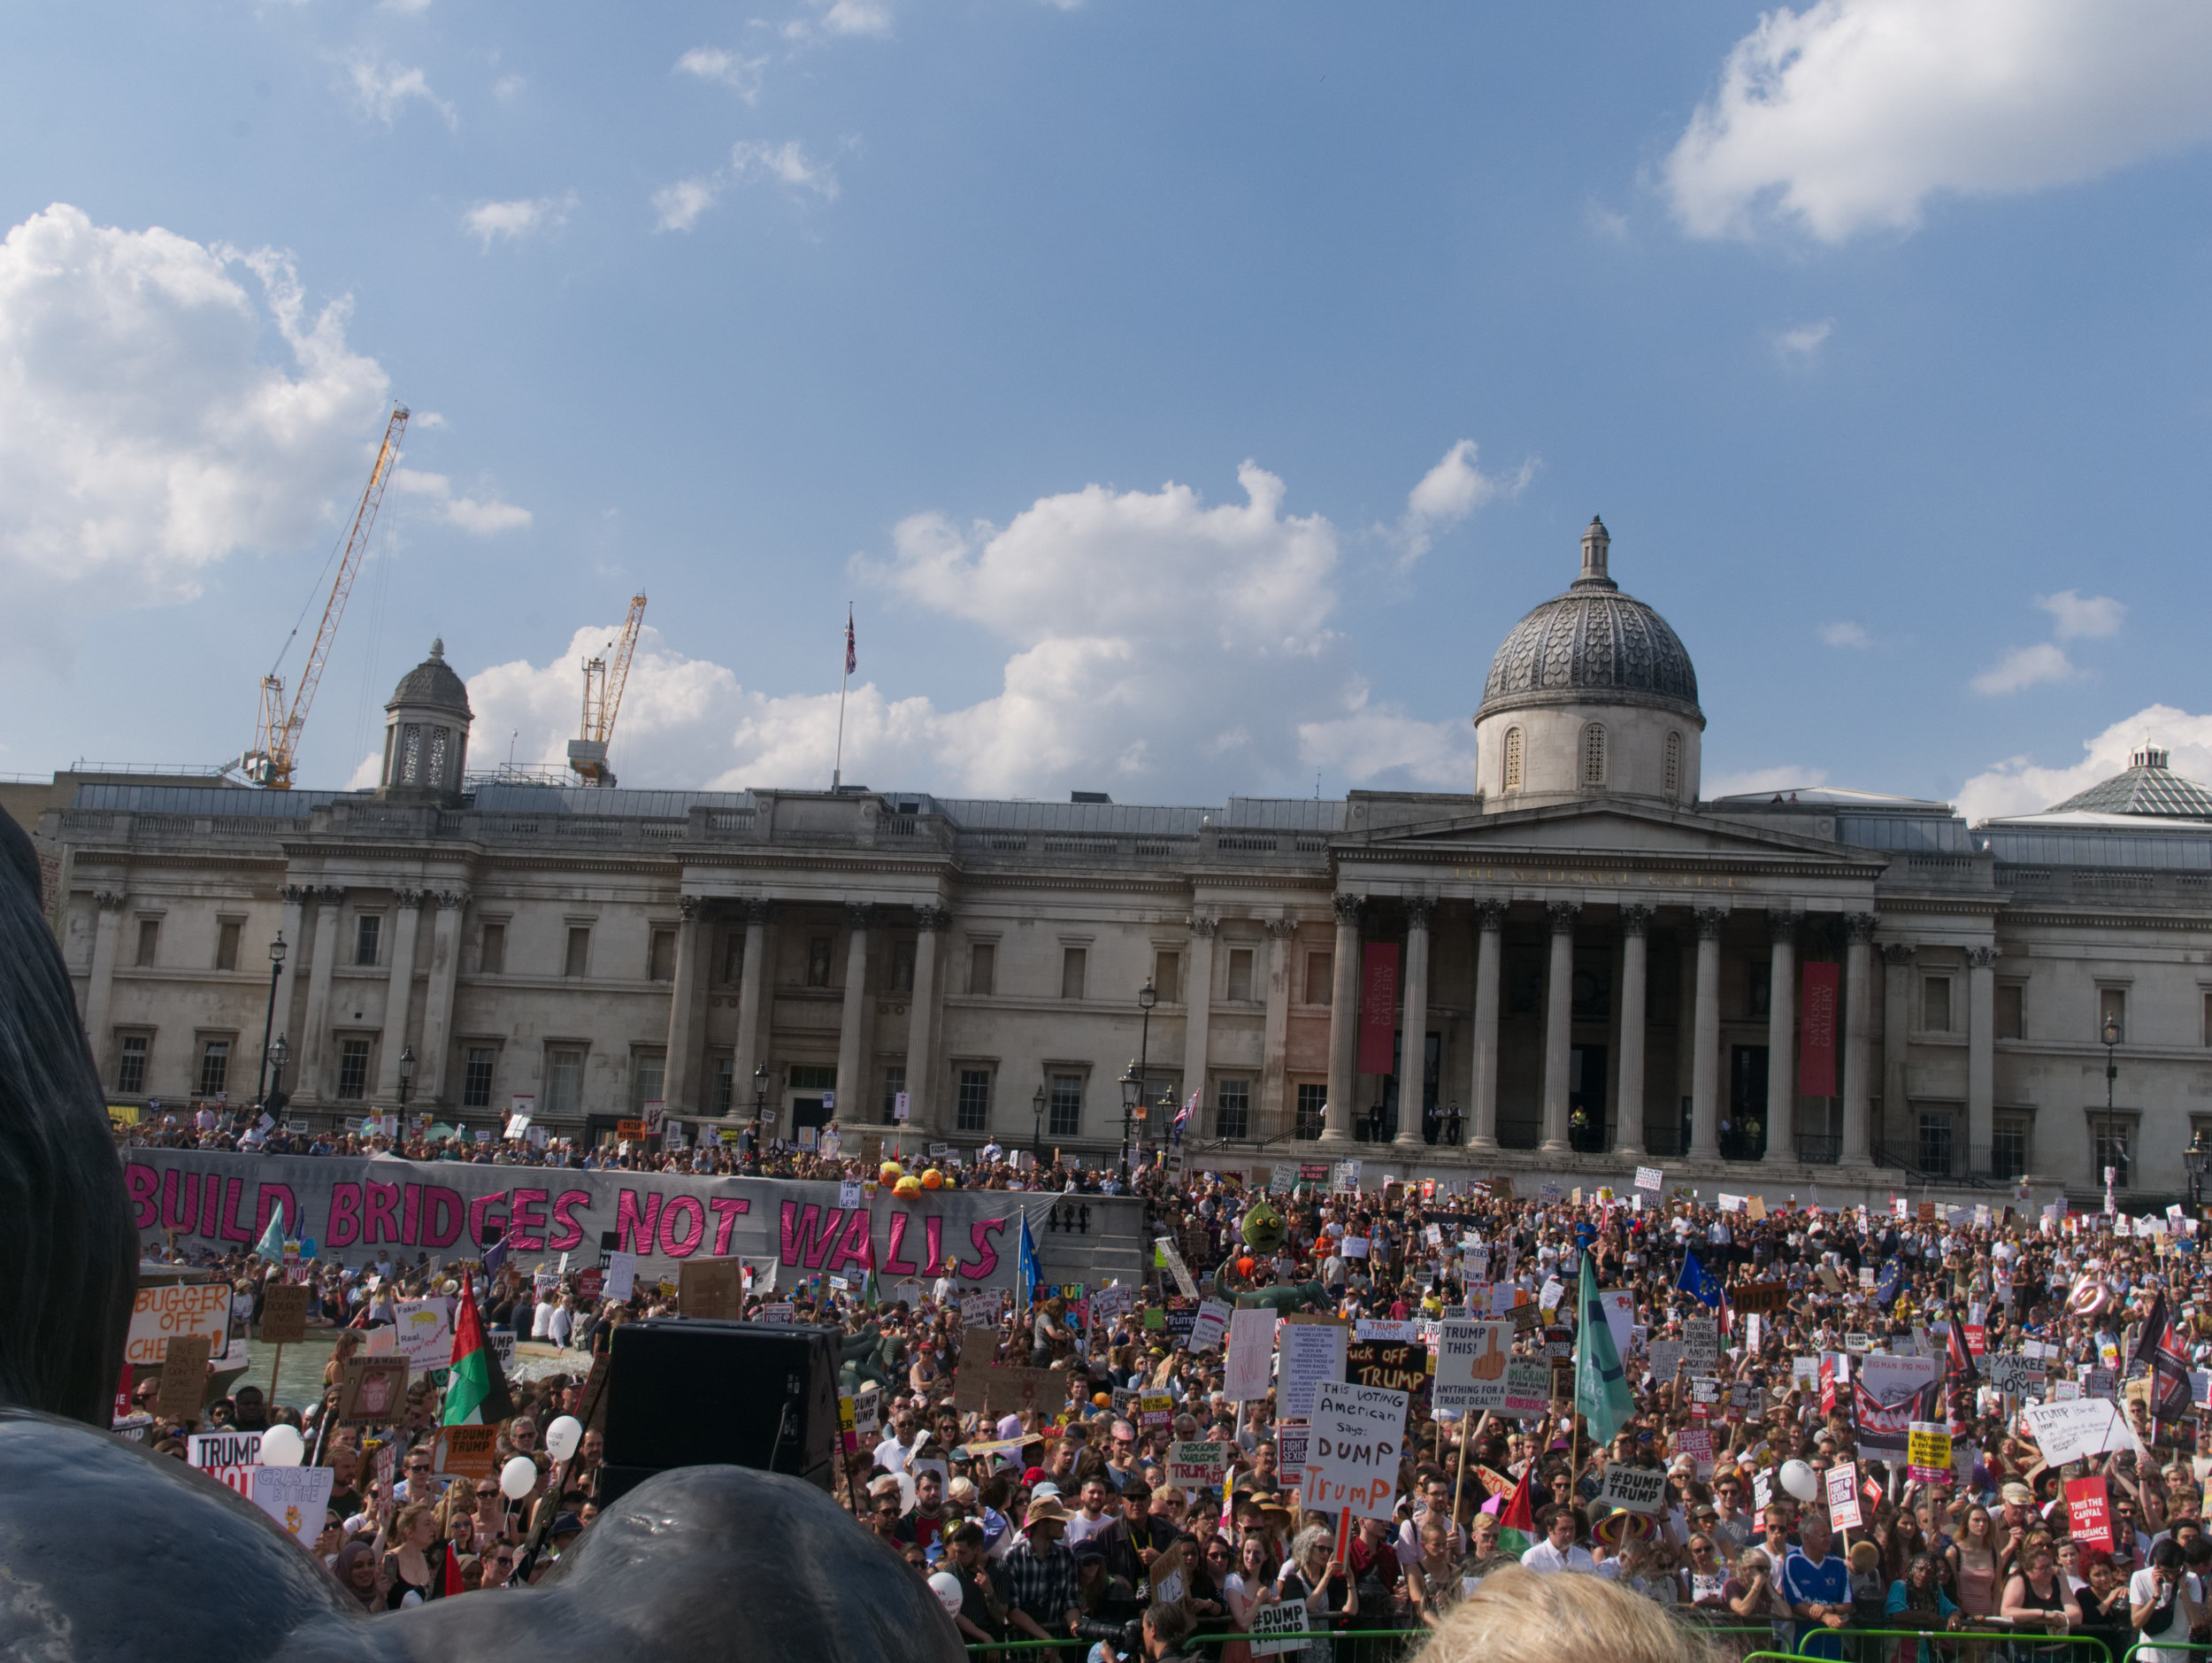 a view from the stage at Trafalgar Square - first time on the steps of Nelson's Column.